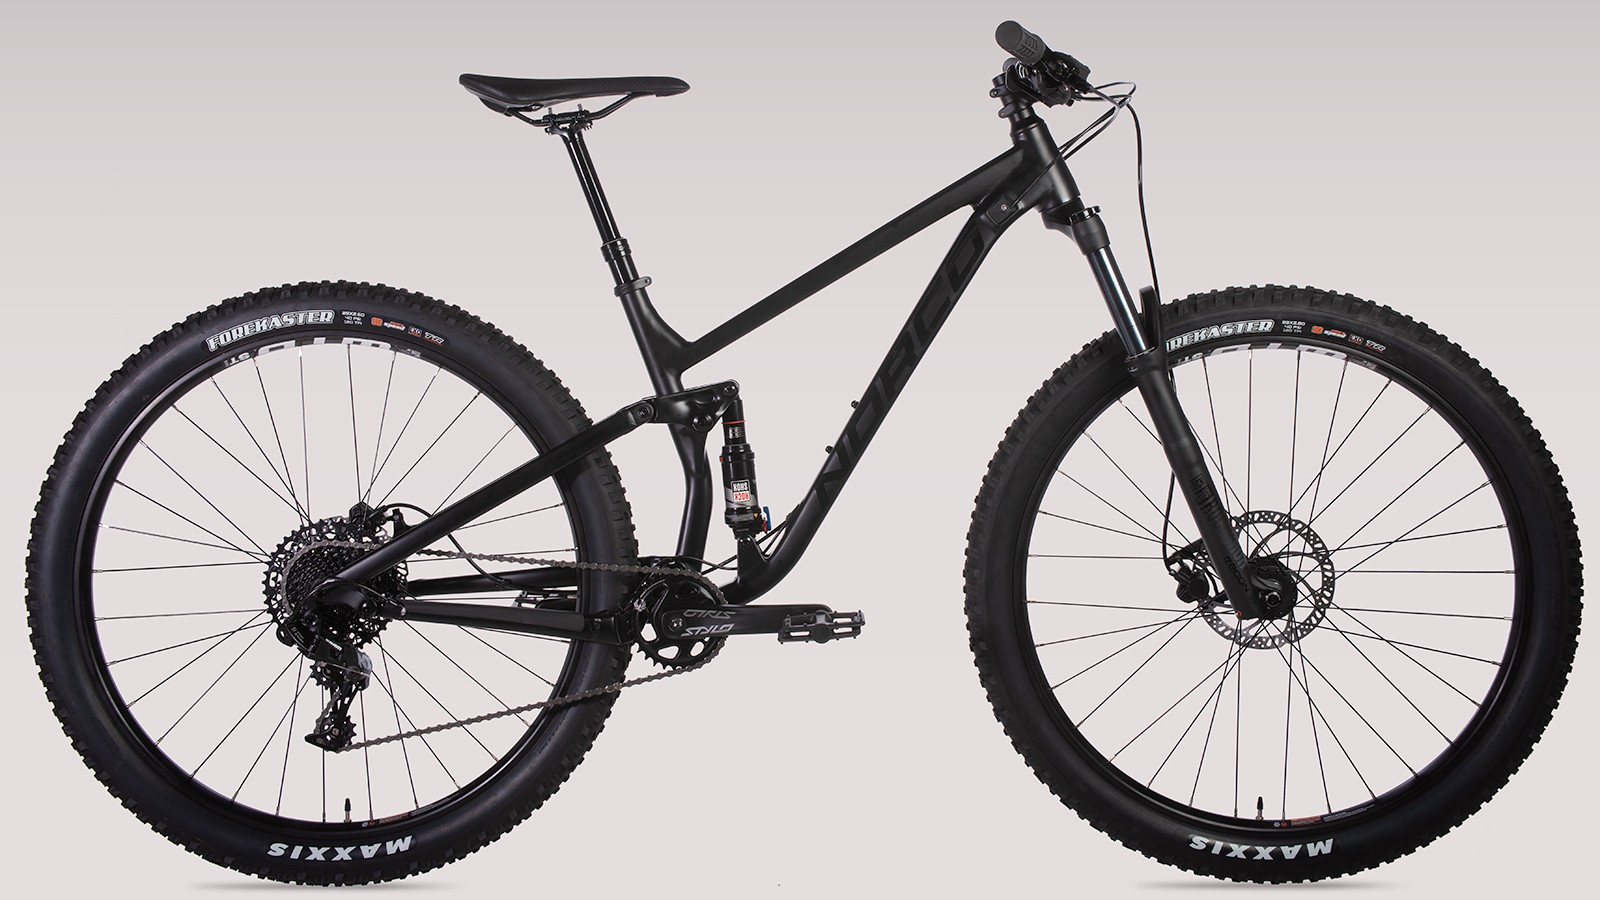 The 2019 Norco Fluid FS3